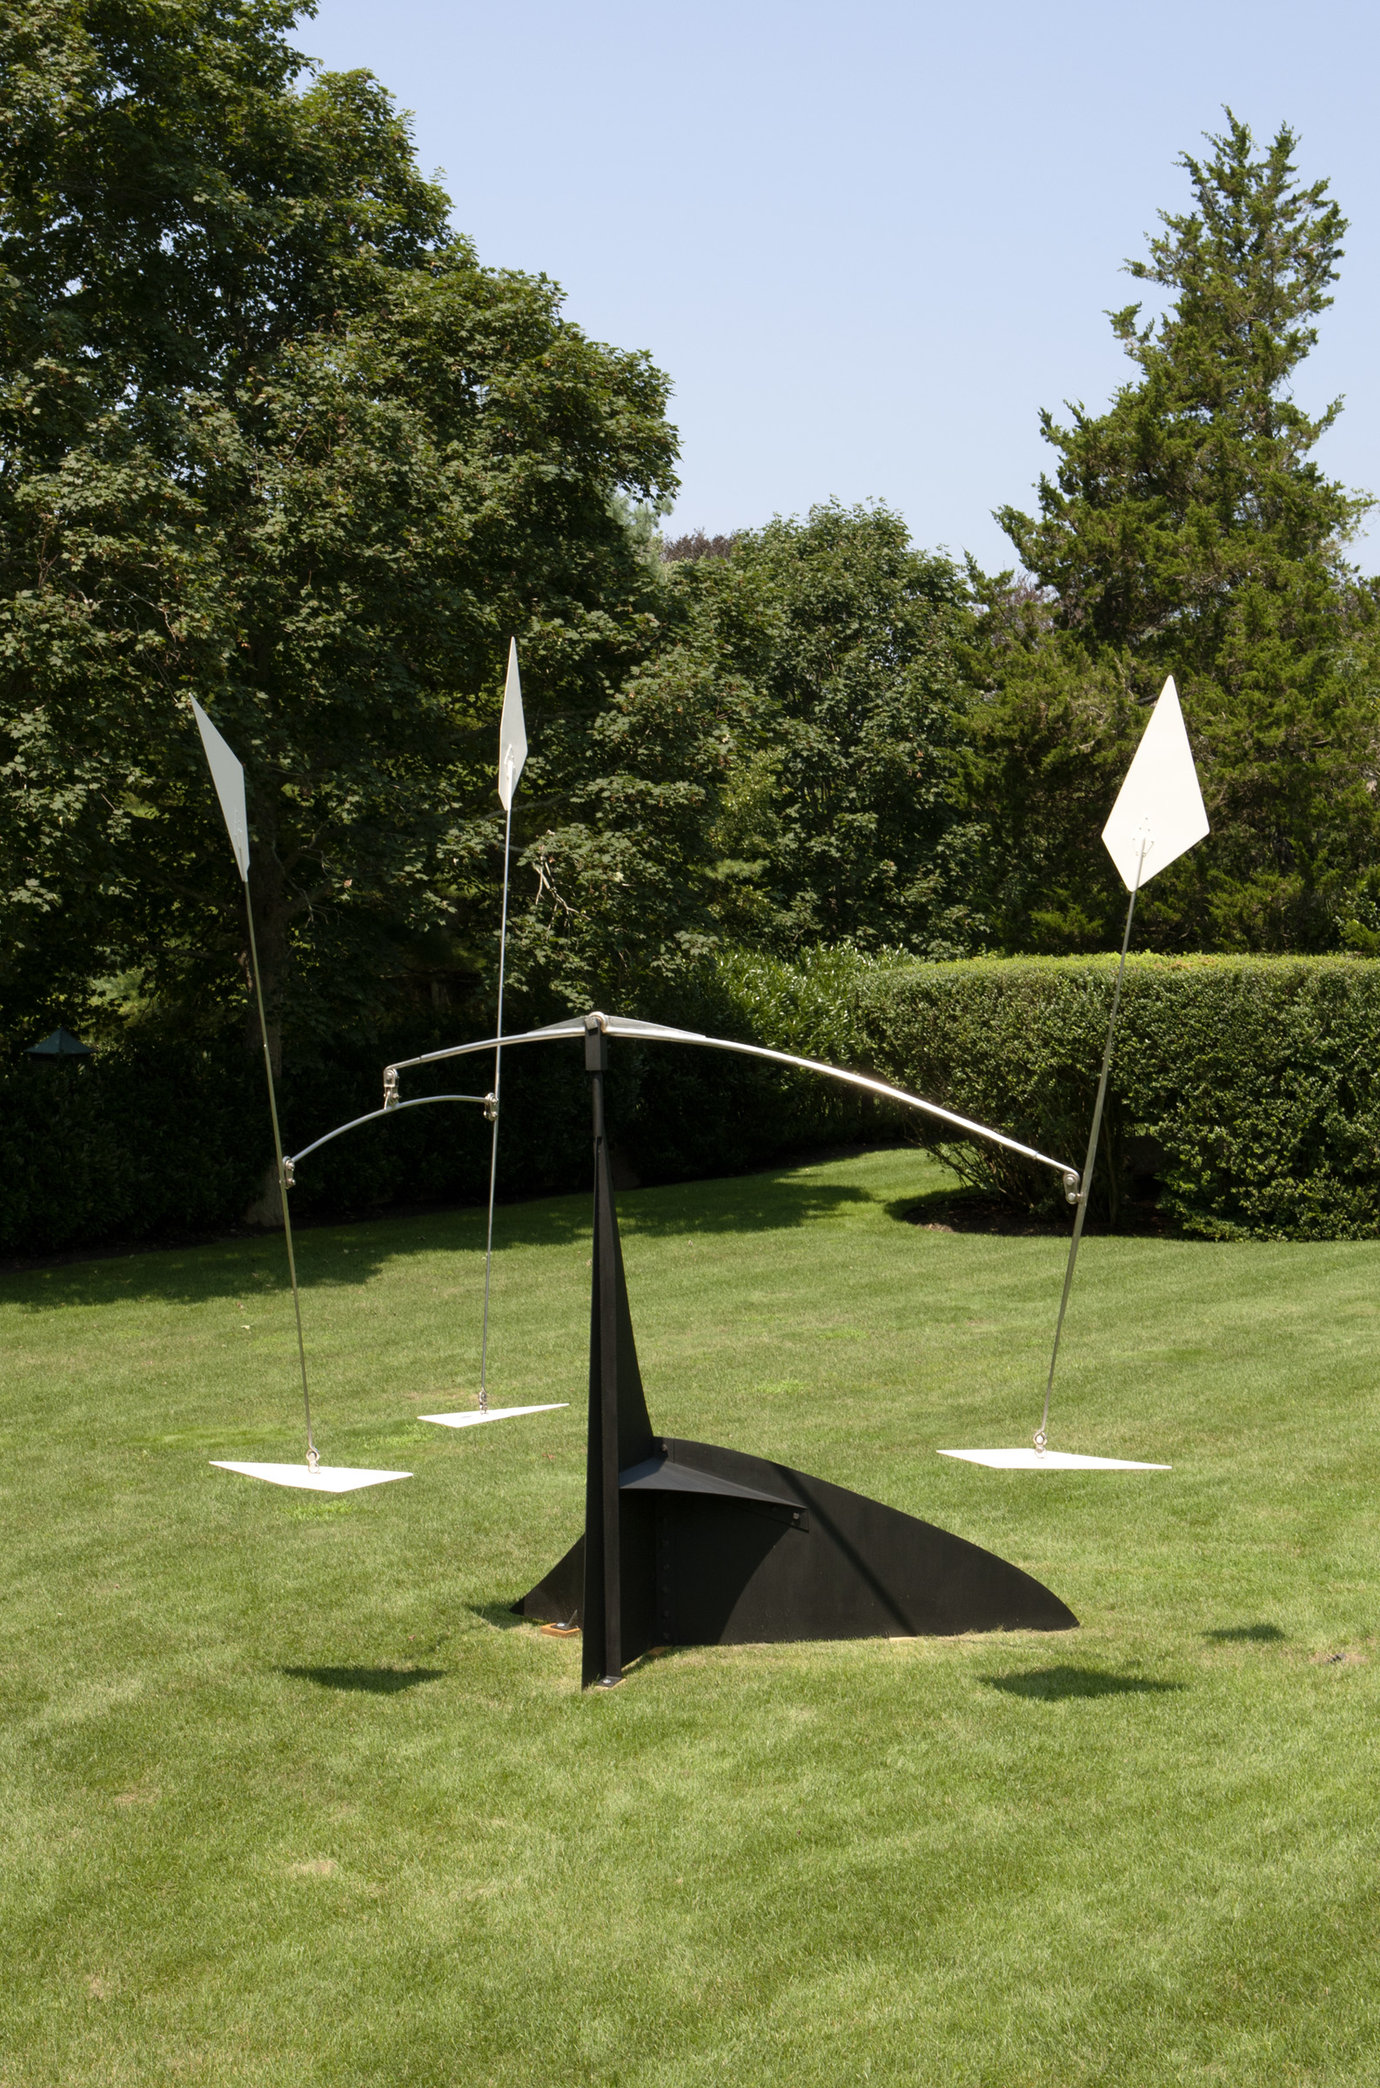 ". Sheet metal and paint, 16&apos; 6"" x 14&apos; 1"" x 9&apos; 9"" (502.9 cm x 429.3 cm x 297.2 cm)."